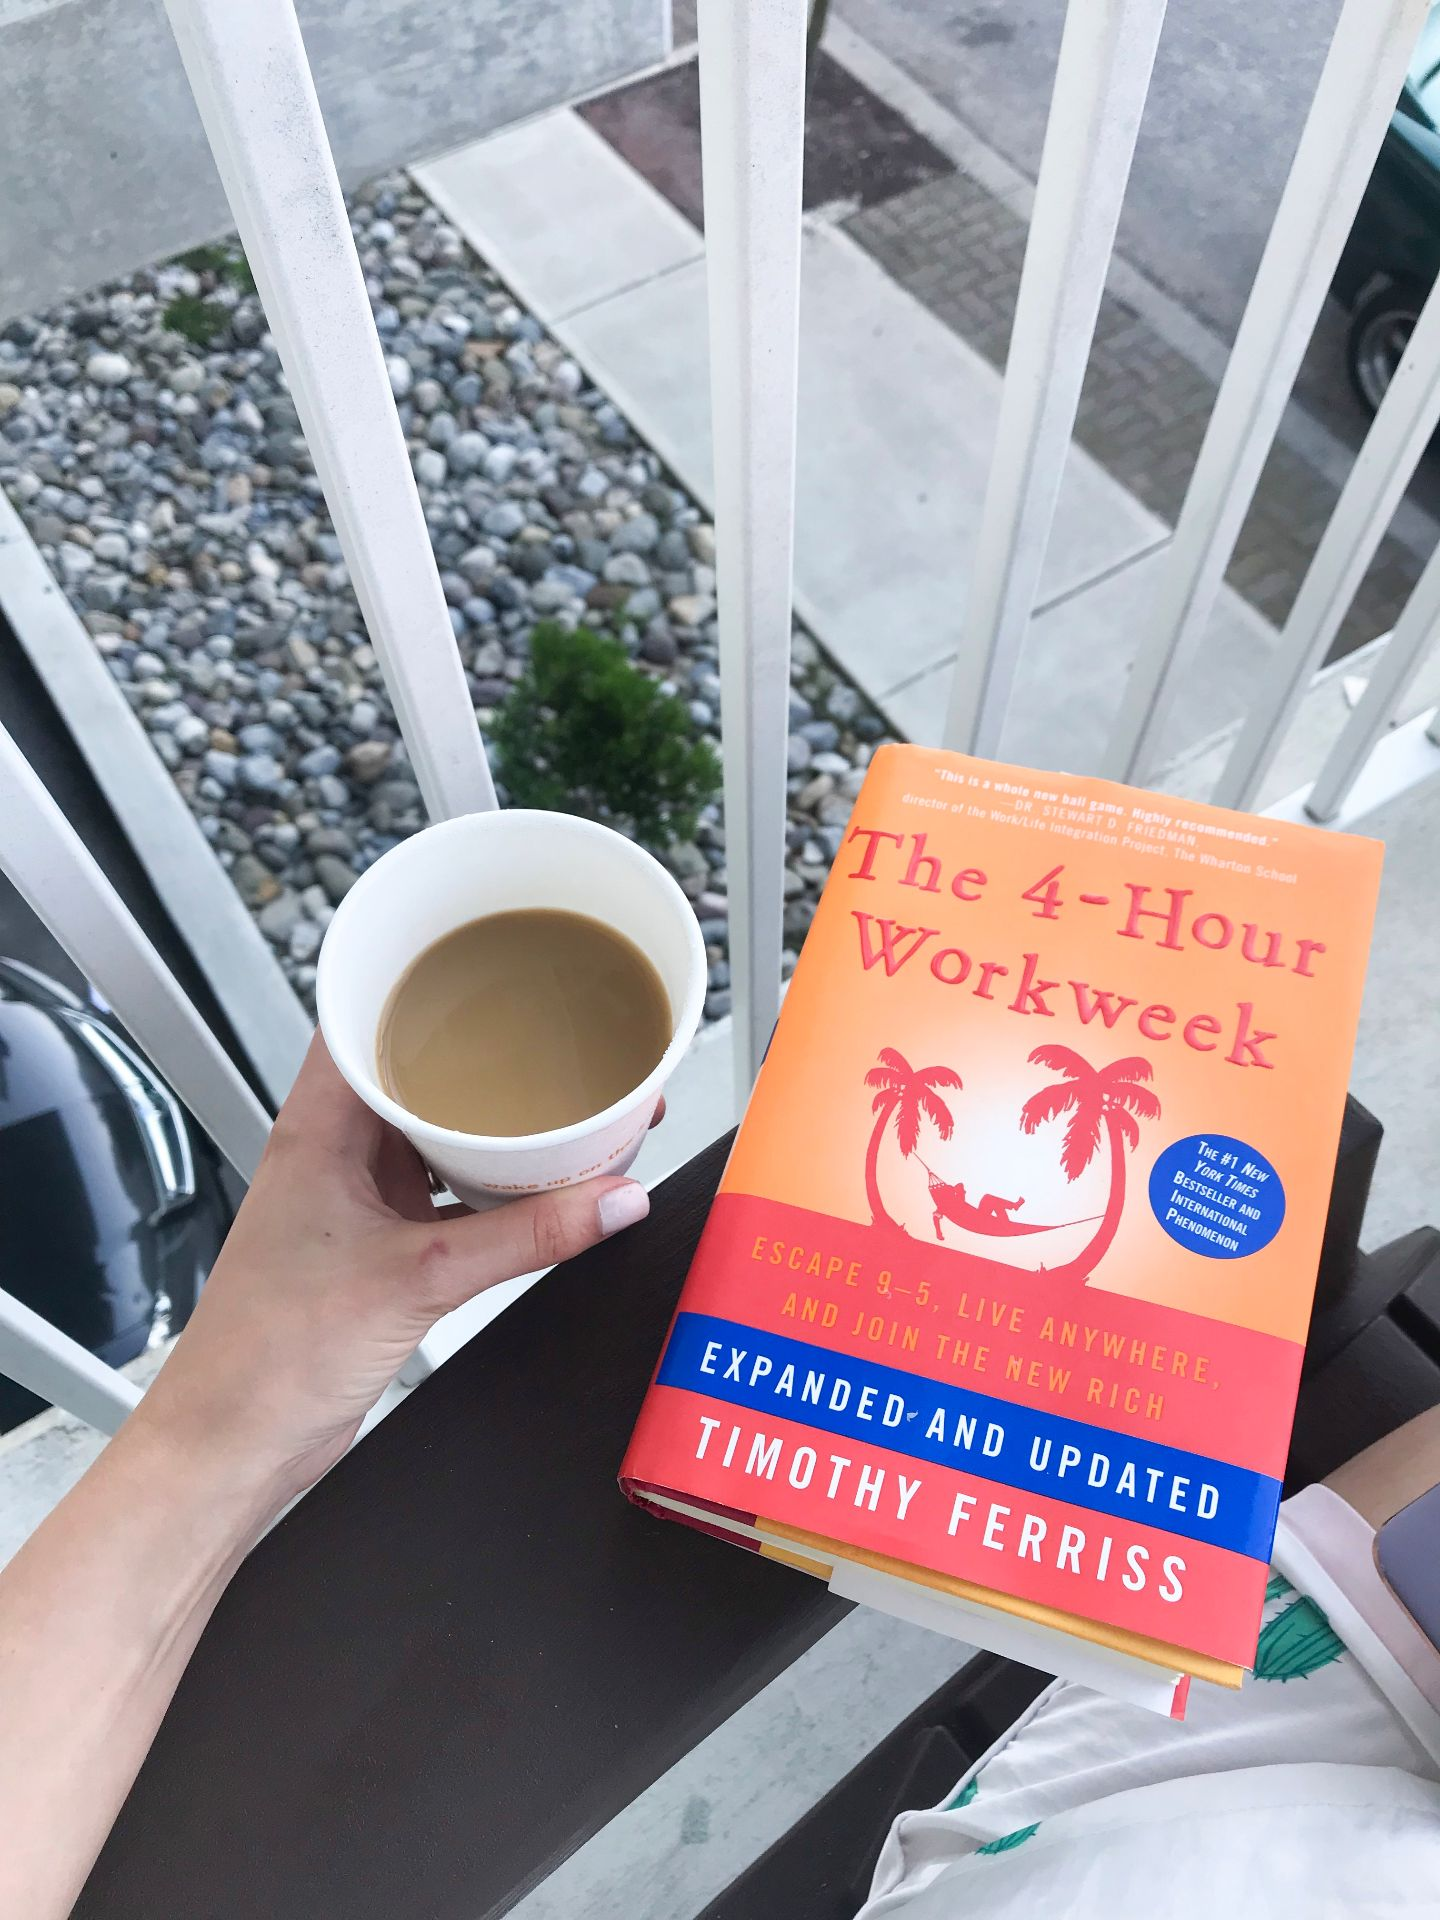 On Dreamlining your Life - Lessons from The 4 Hour Workweek by TIm Ferriss, from Philadelphia lifestyle blogger Erica of Coming Up Roses